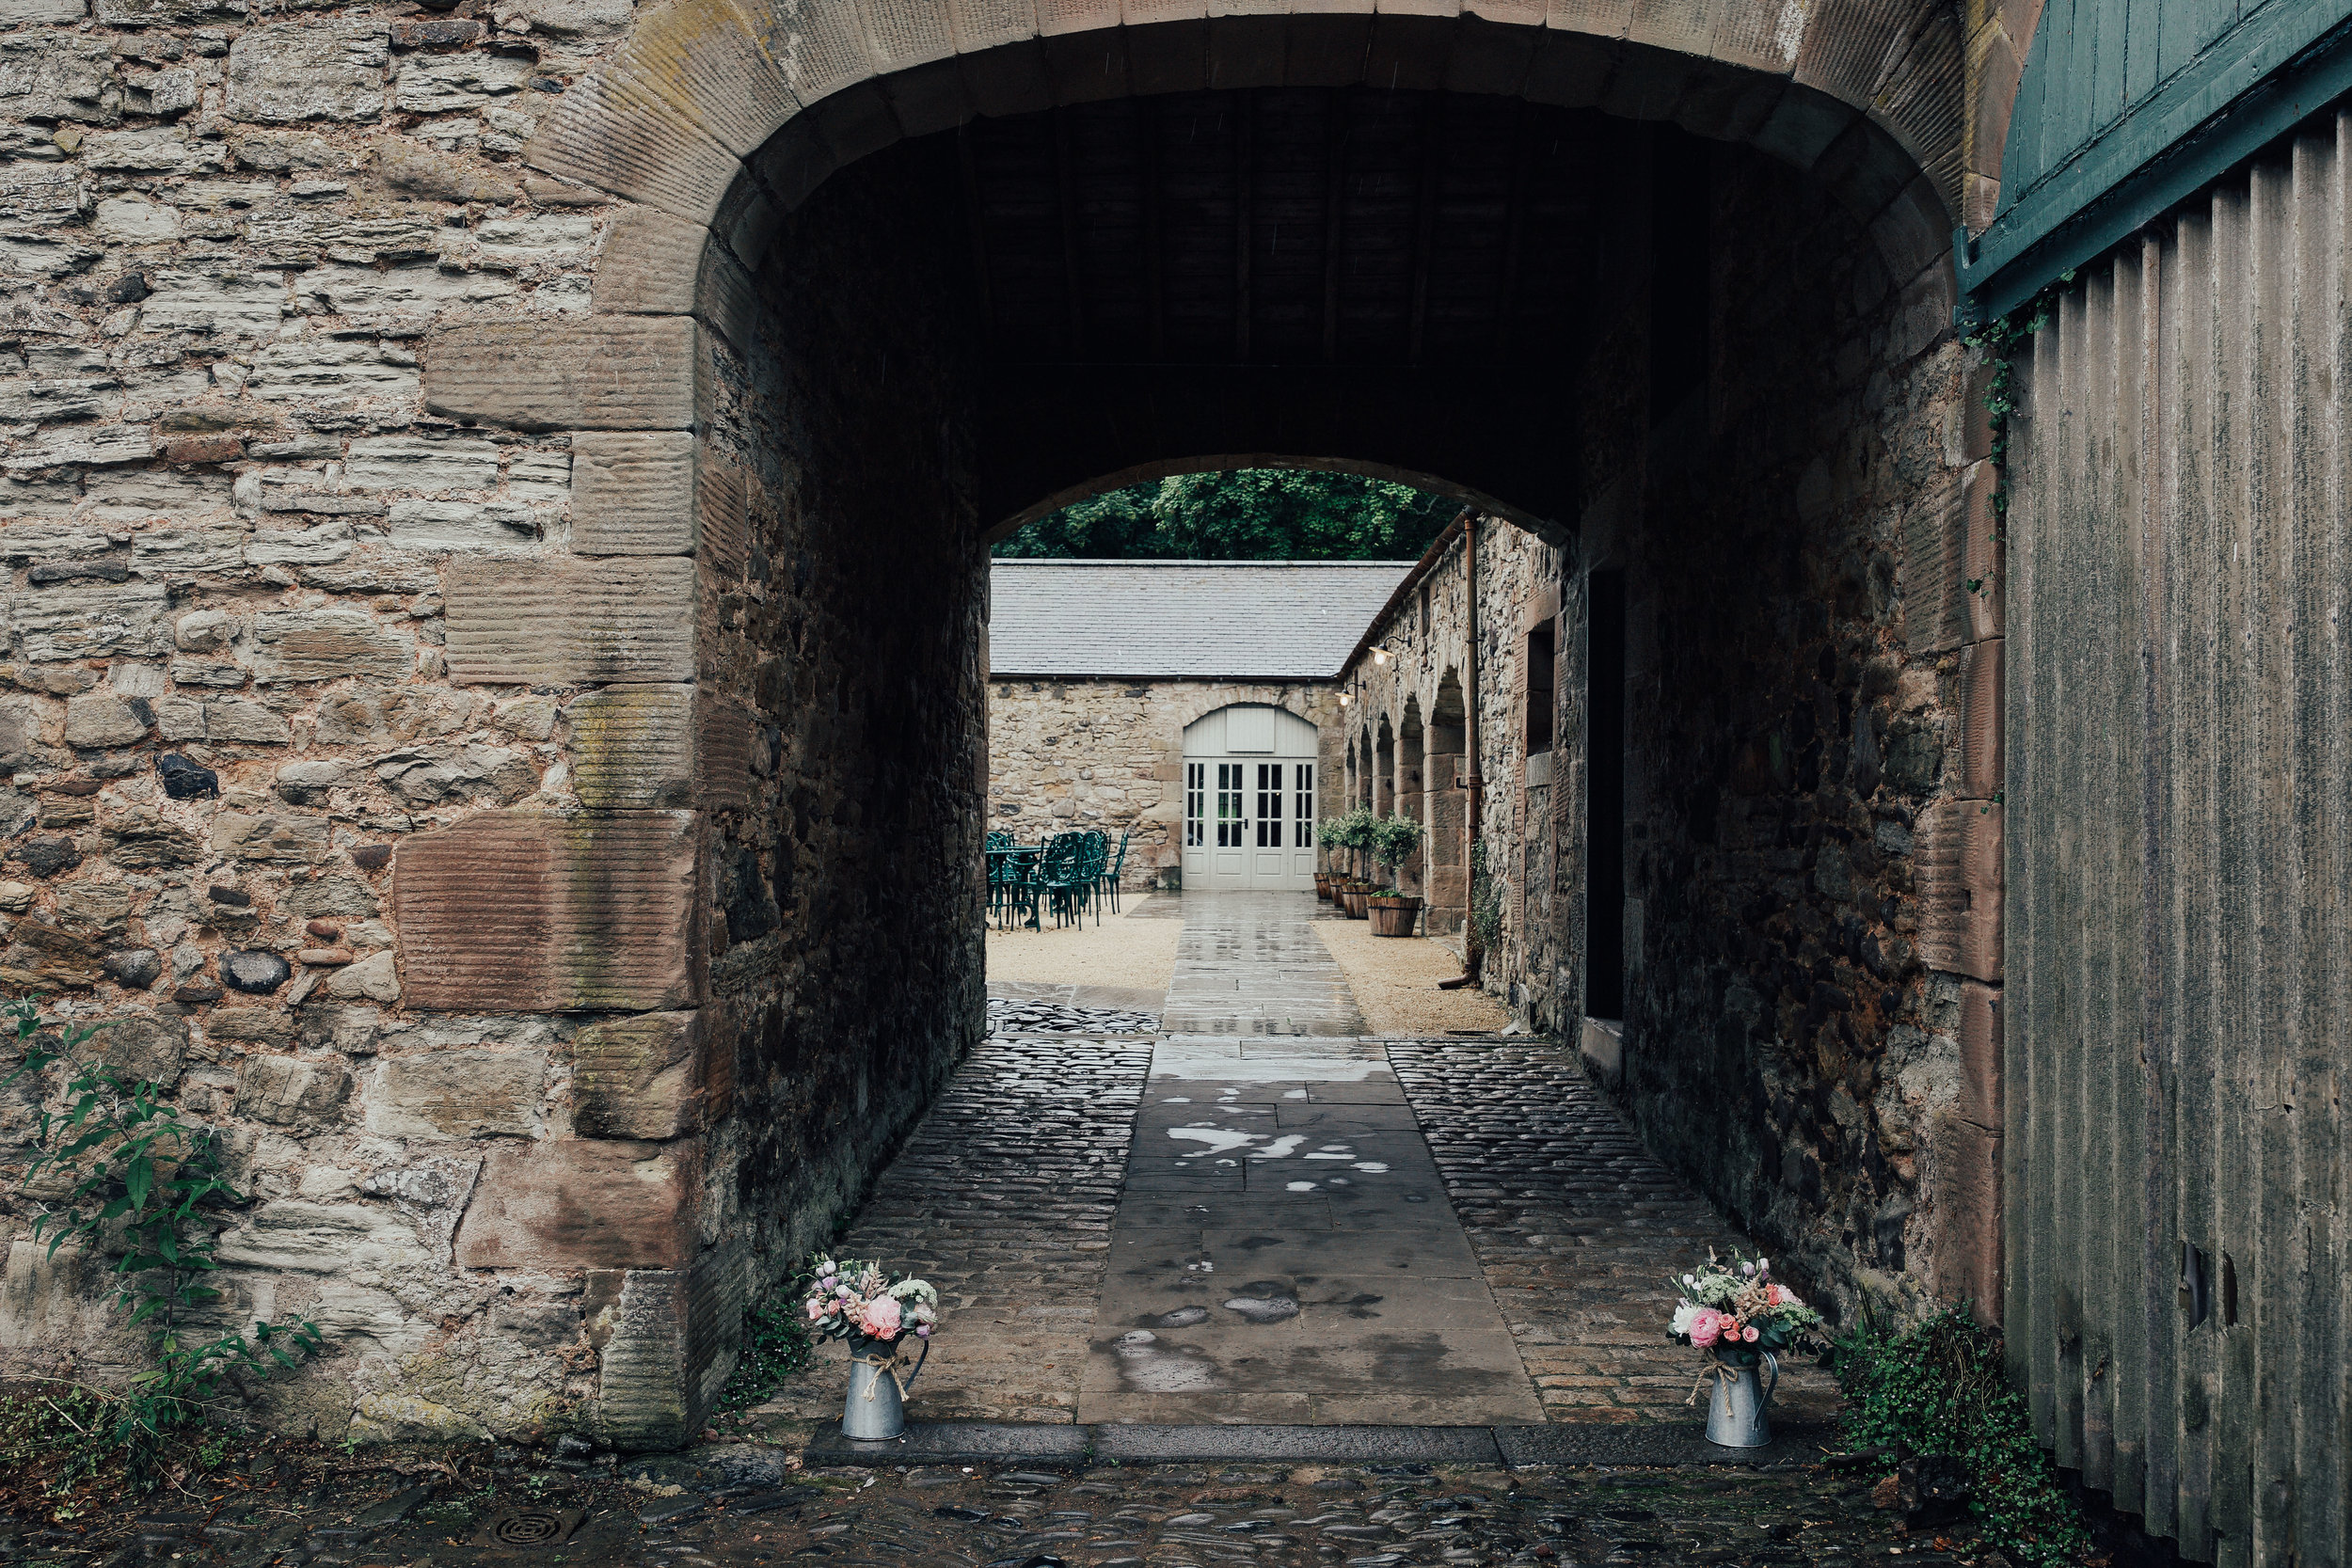 PJ_PHILLIPS_PHOTOGRAPHY_EDINBURGH_WEDDERBURN_BARNS_WEDDING_EDINBURGH_WEDDING_PHOTOGRAPHER_1.jpg